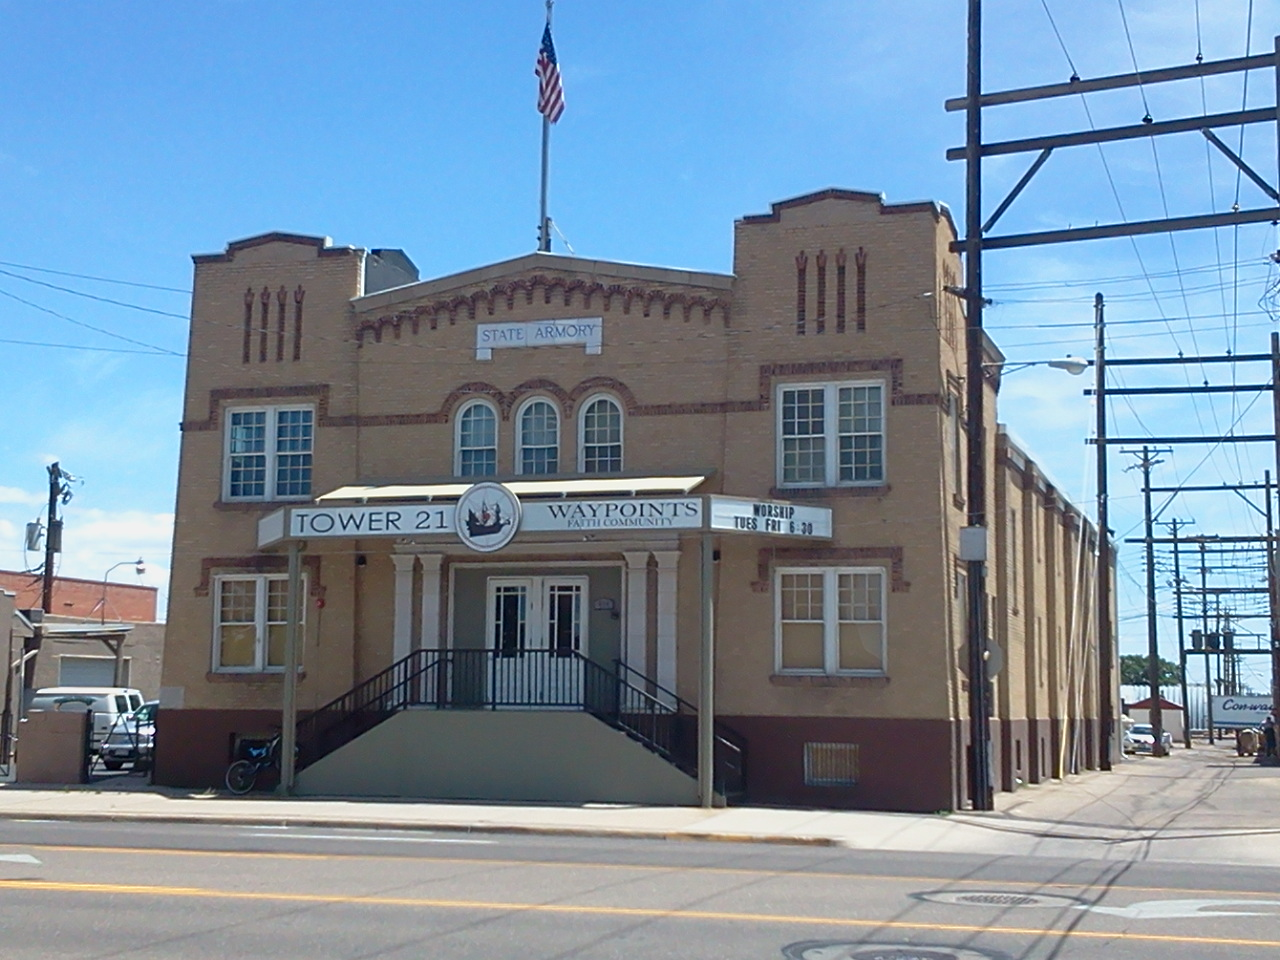 File:State Armory, Greeley, CO.jpeg - Wikimedia Commons